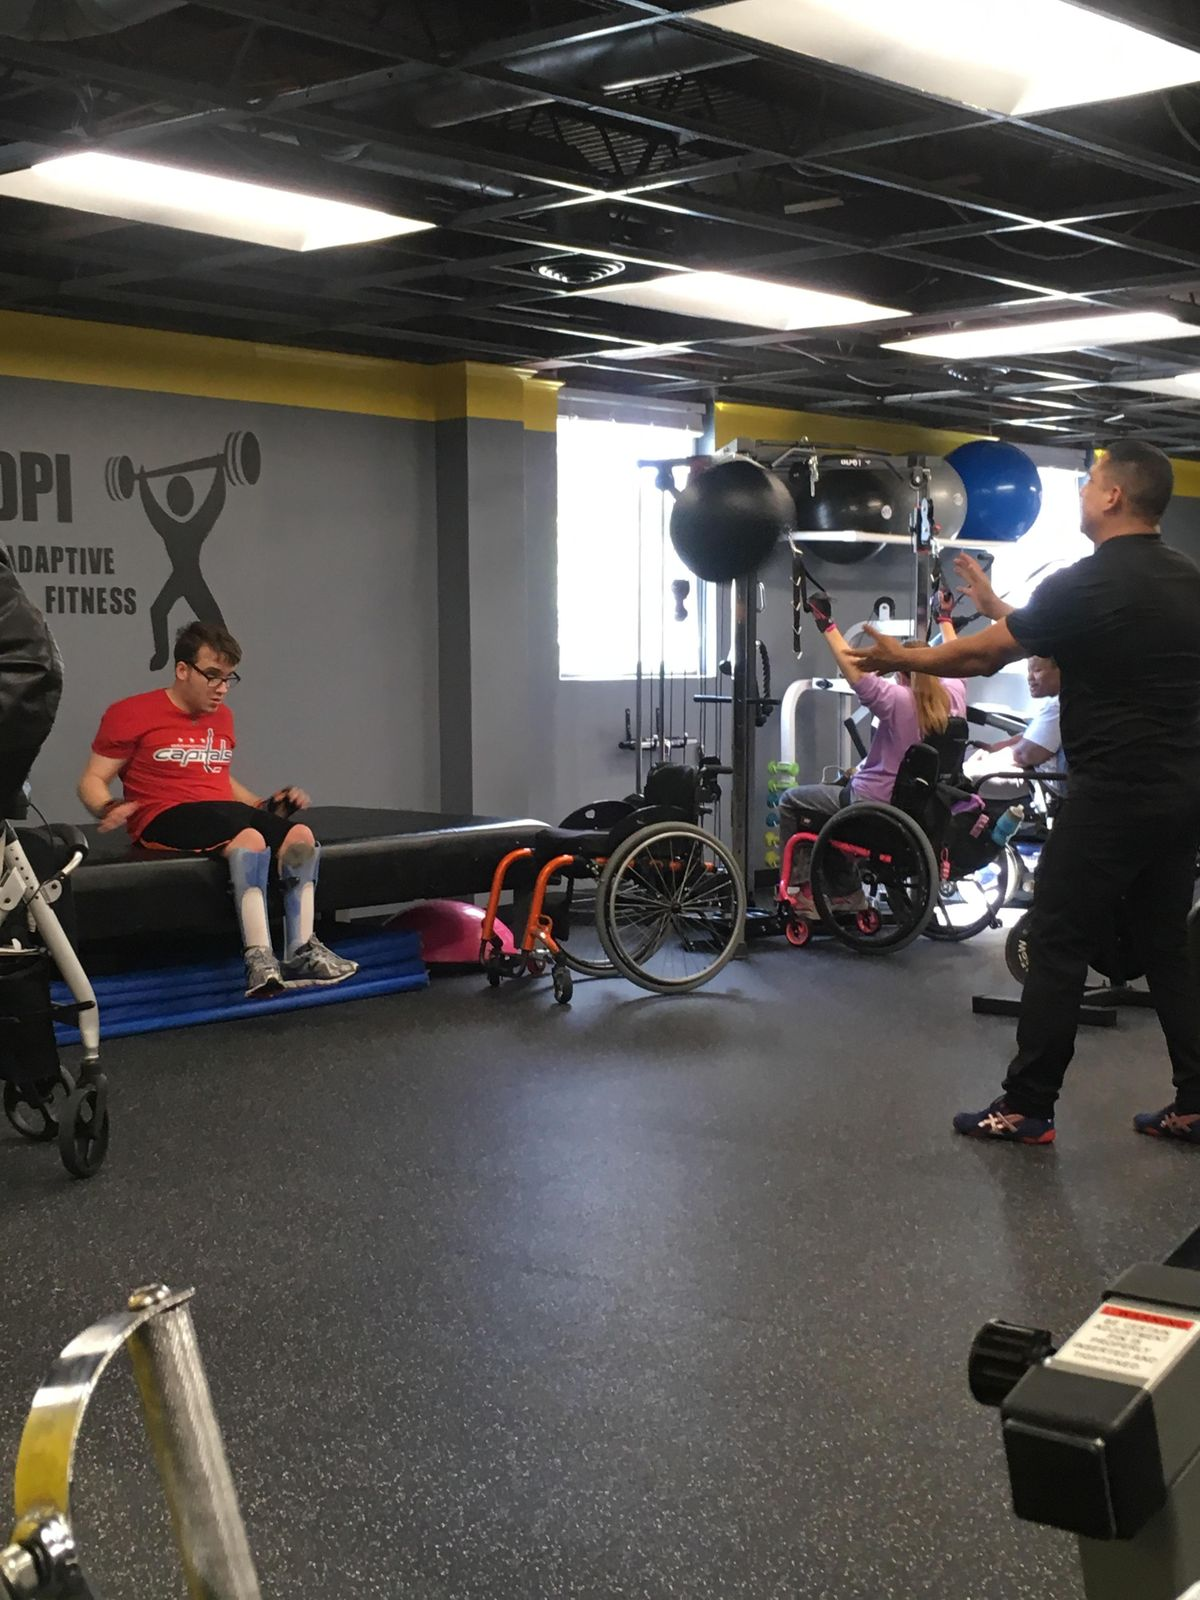 Wednesday-DPI Adaptive Open Gym (20)